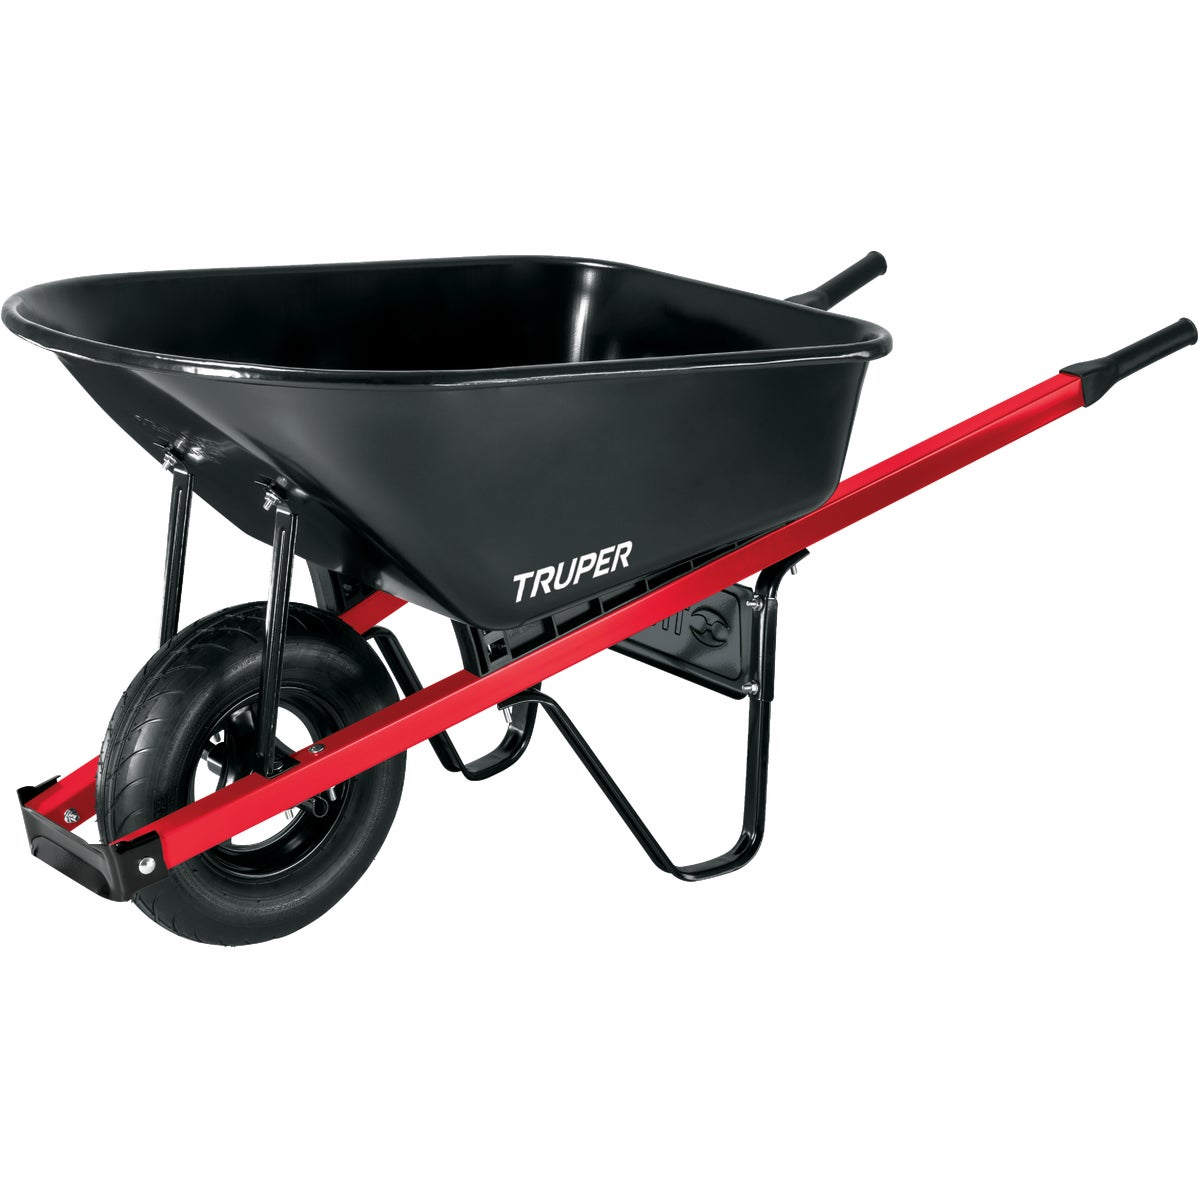 6CU FT STEEL WHEELBARROW - TM6 by Truper Herramientas